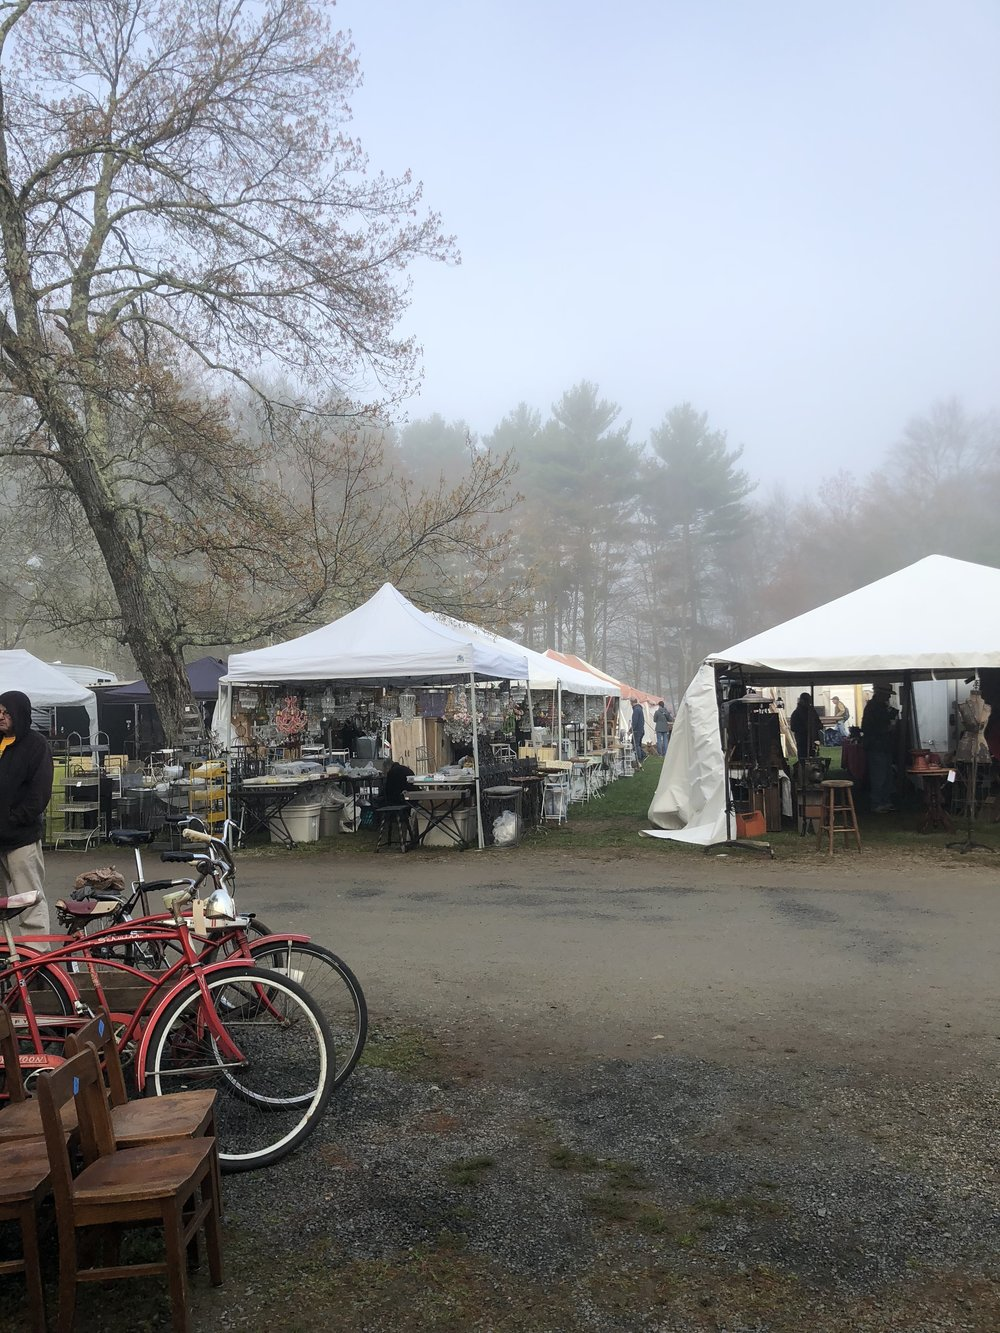 Opening Day at Brimfield Antique Markets (6:00 AM)